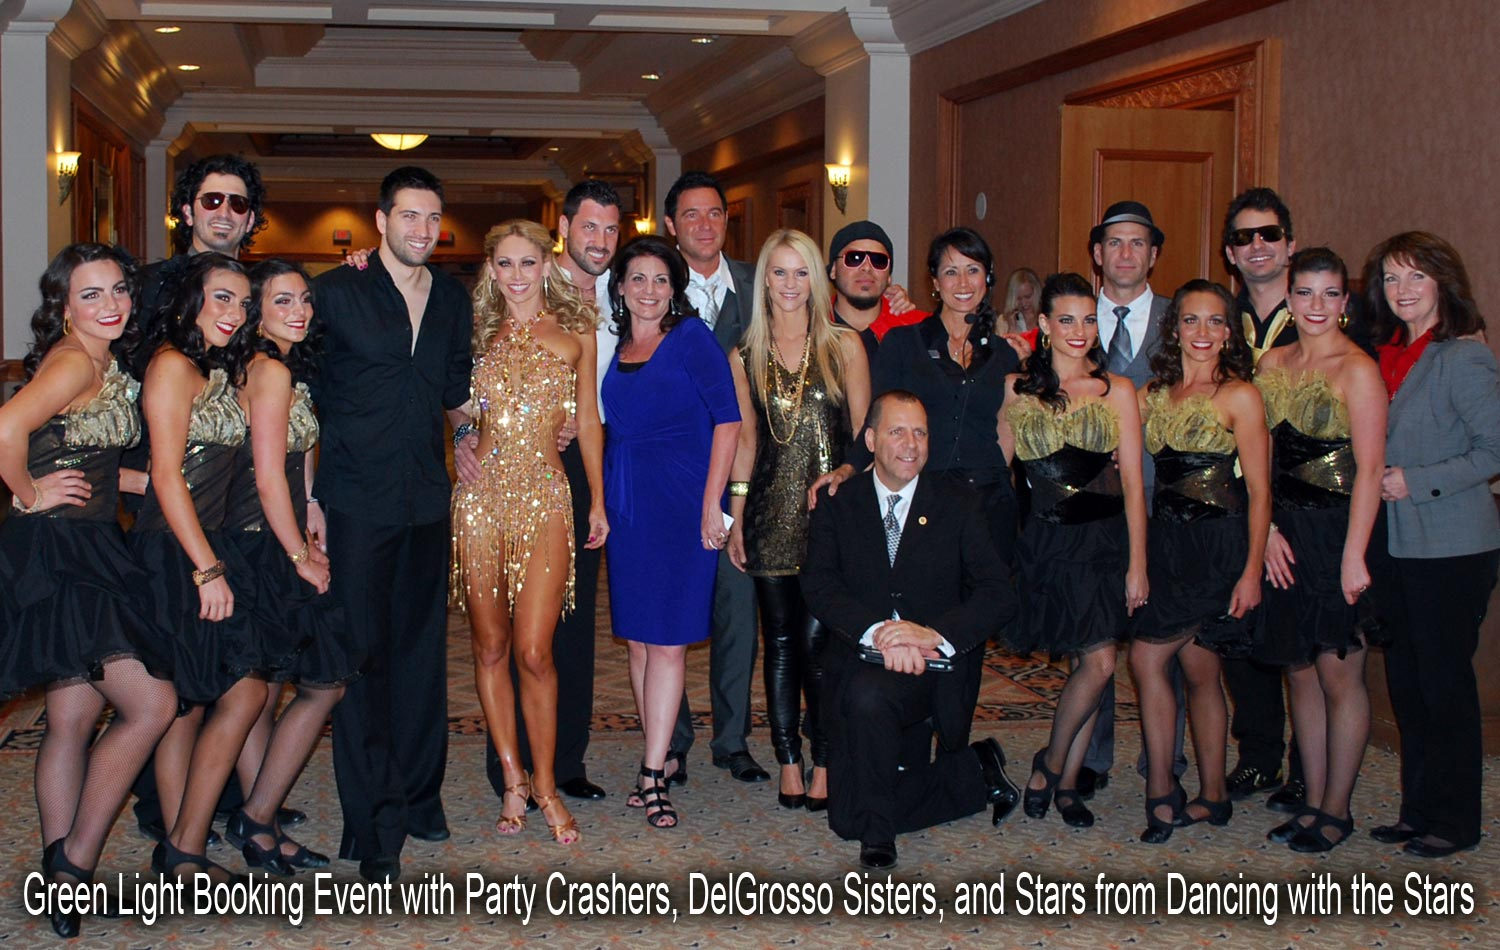 Sally from Green Light Booking with Party Crashers, DelGrosso Sisters, and Professional Dancers from Dancing with the Stars' Maksim Chmerkovskiy, Kym Johnson, and Dmitry Chaplin